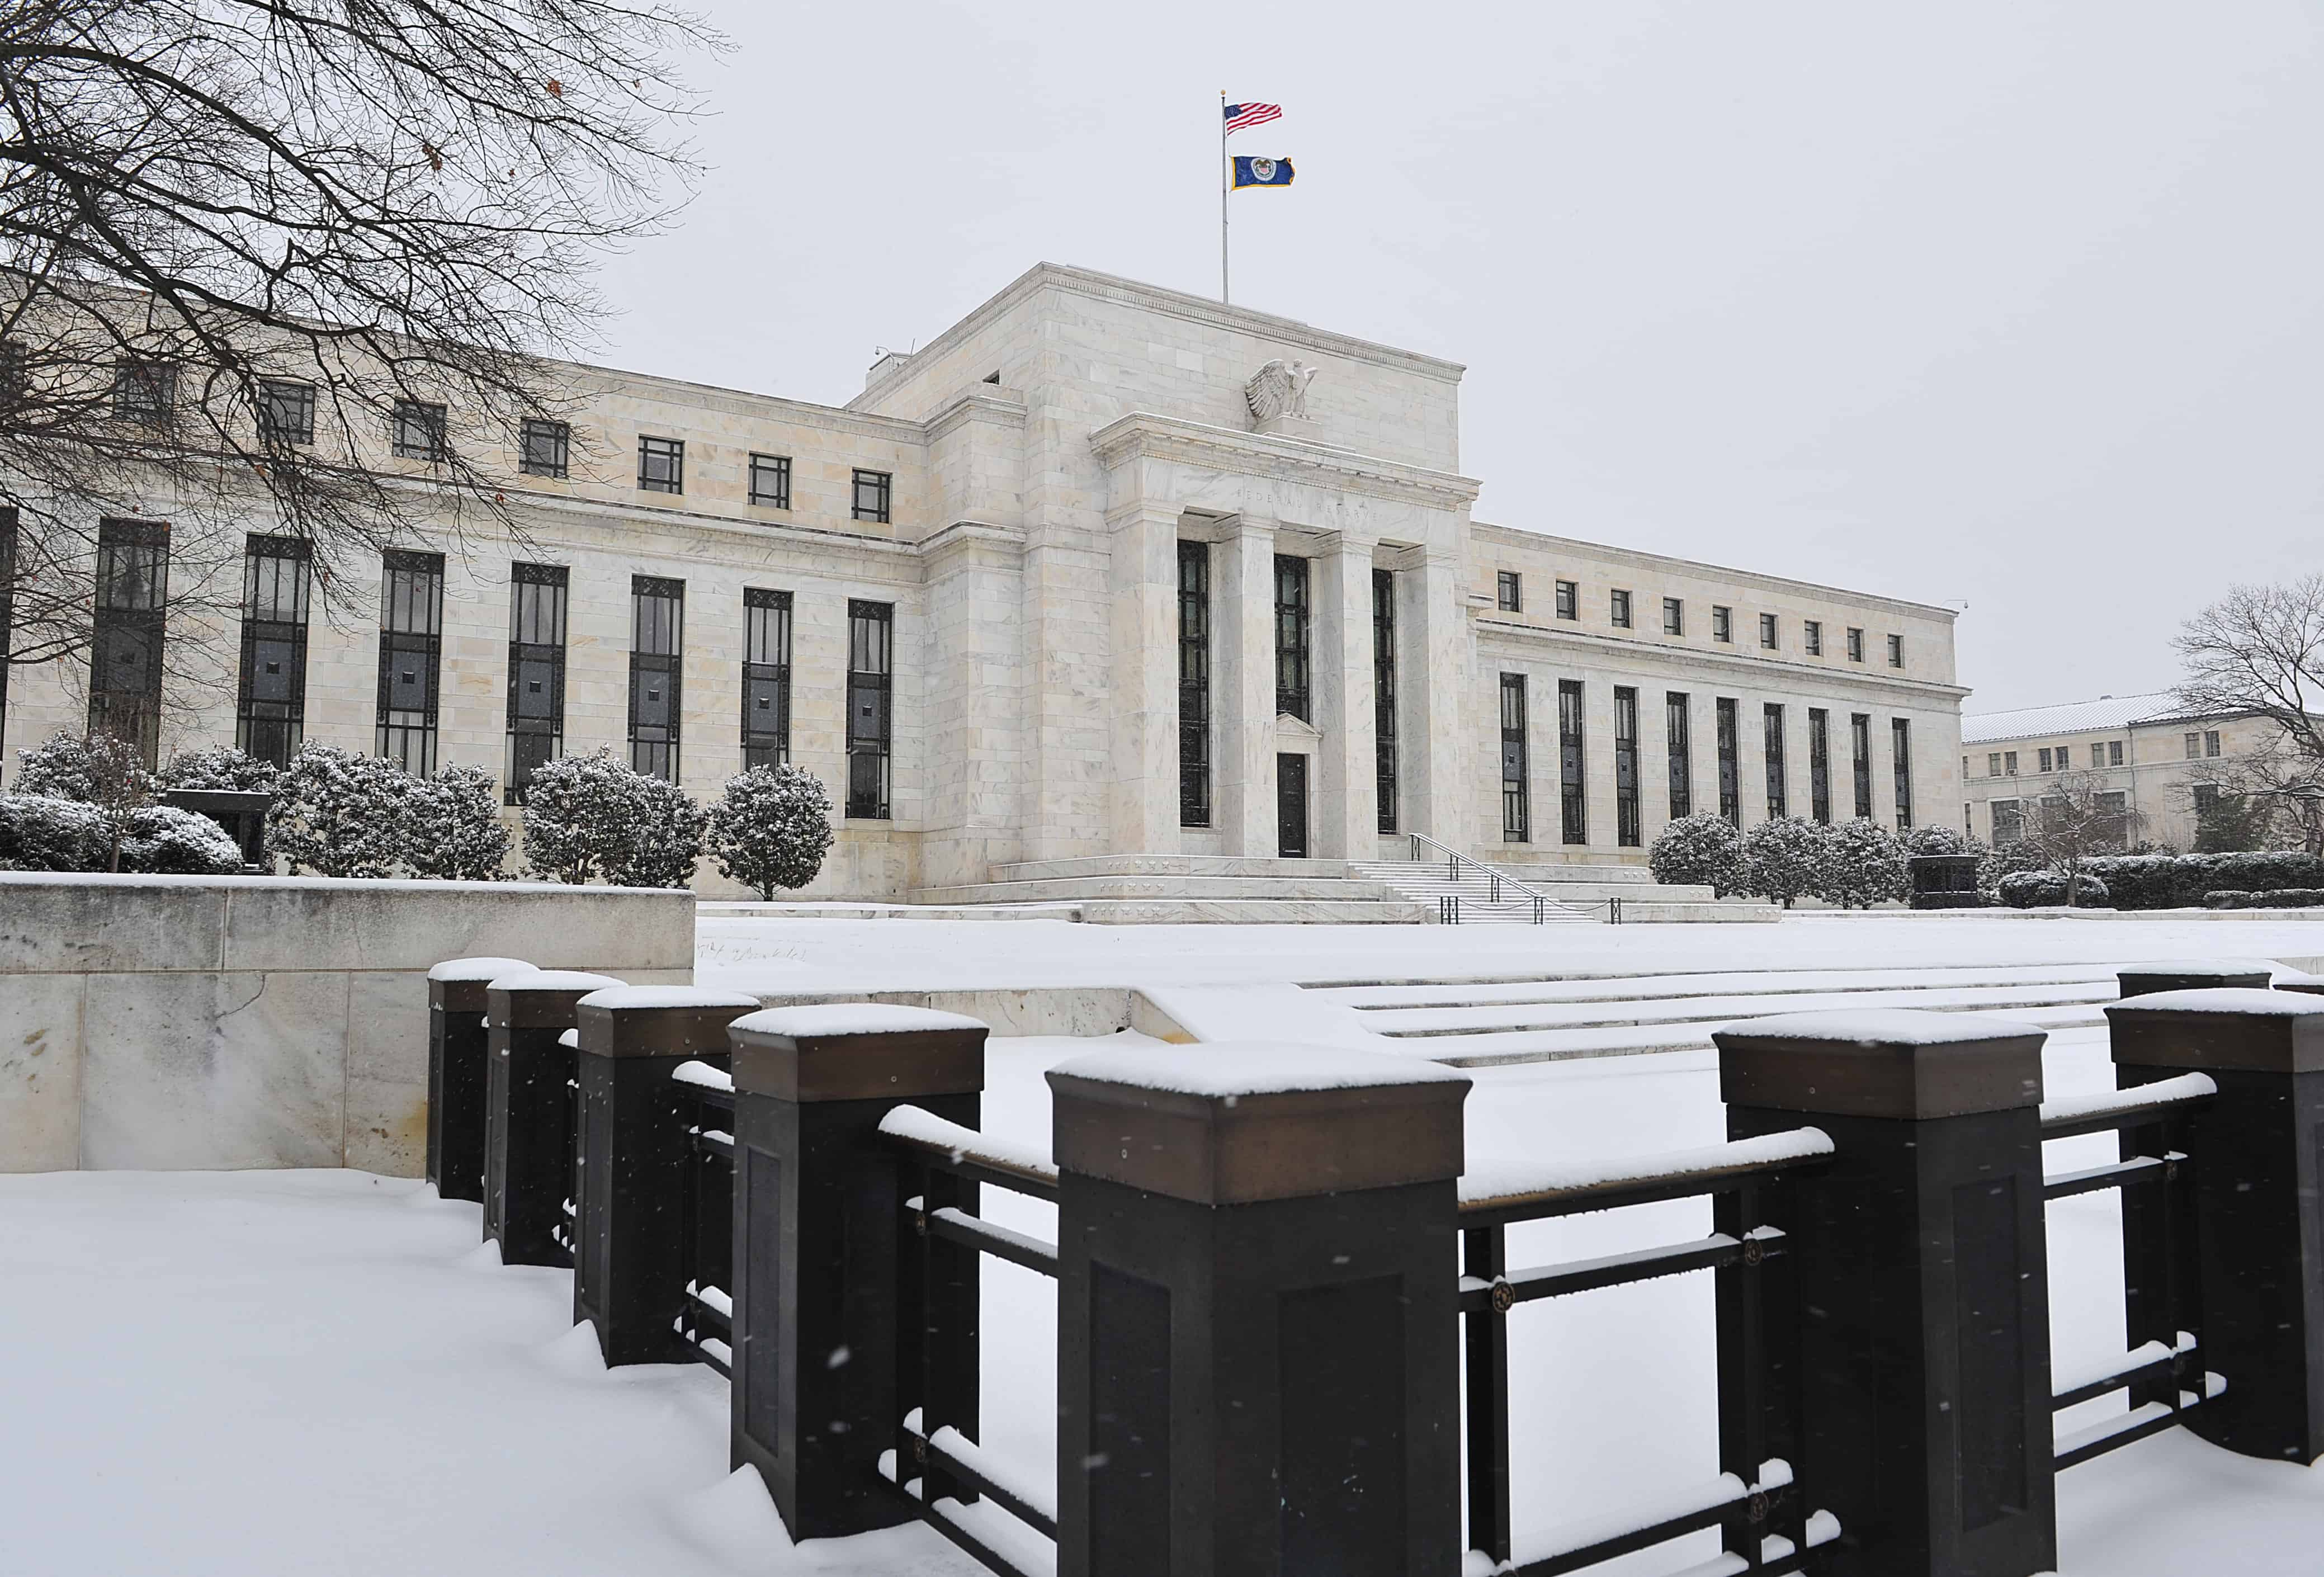 U.S. Federal Reserve building | Economy